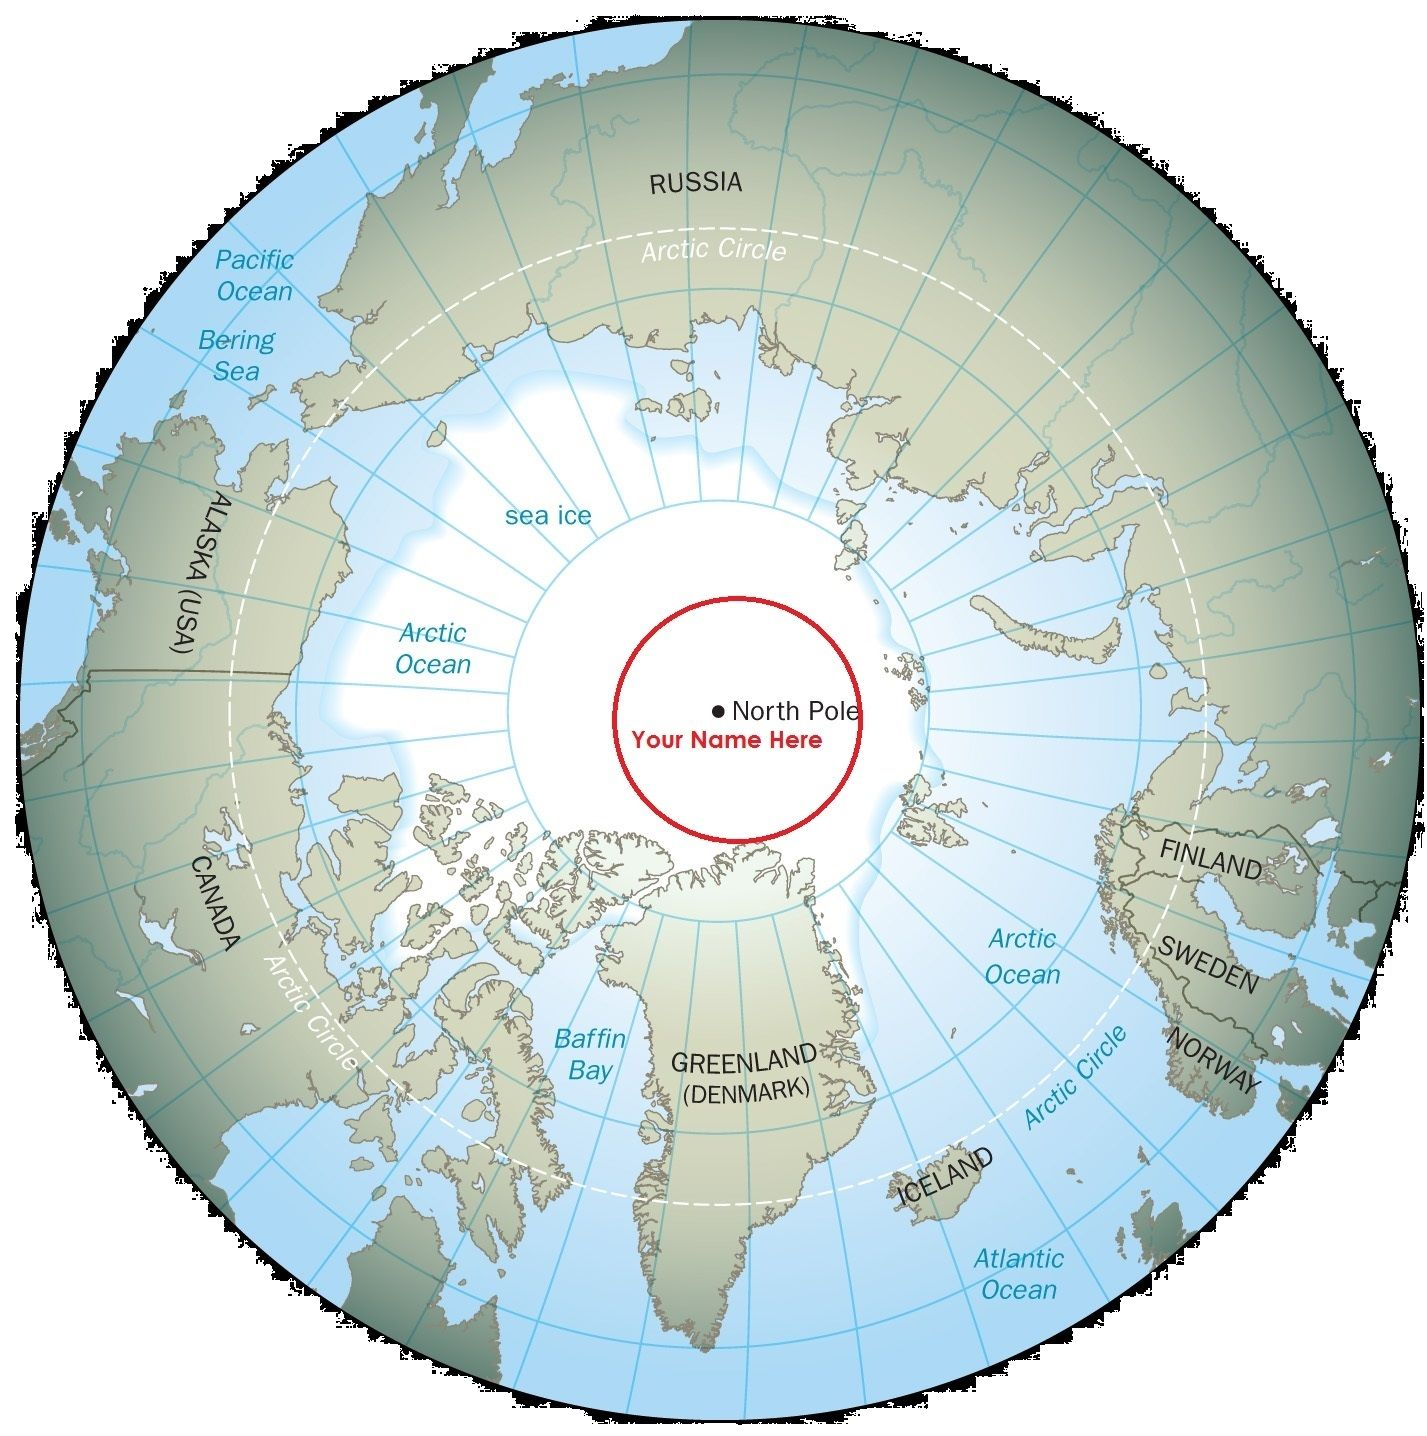 Pin by Sak on Misc | North pole map, North pole, Arctic circle